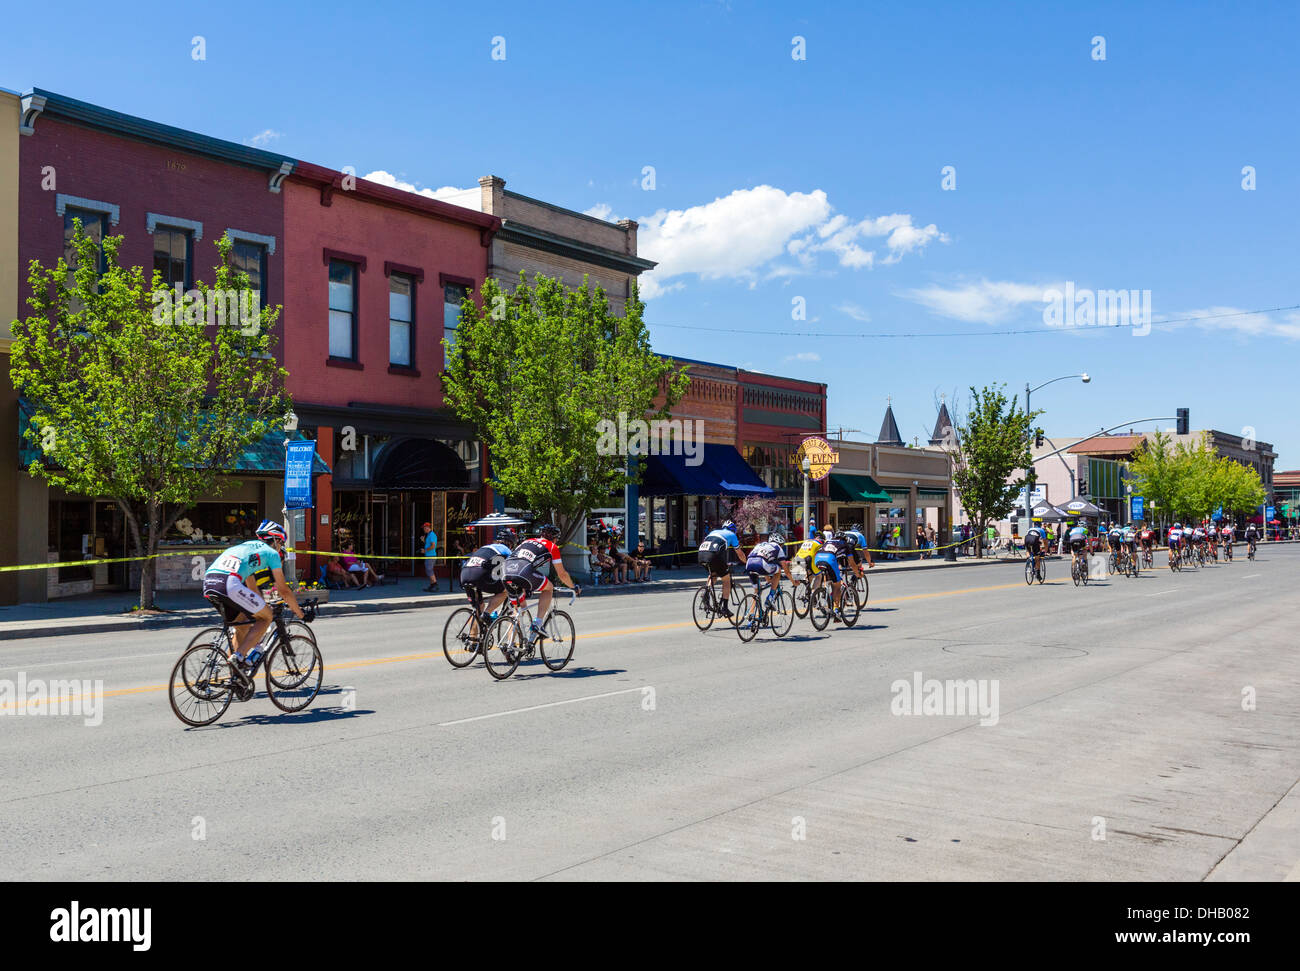 The 2013 Baker City Cycling Classic cycle race going along Main Street in downtown Baker, Oregon, USA - Stock Image